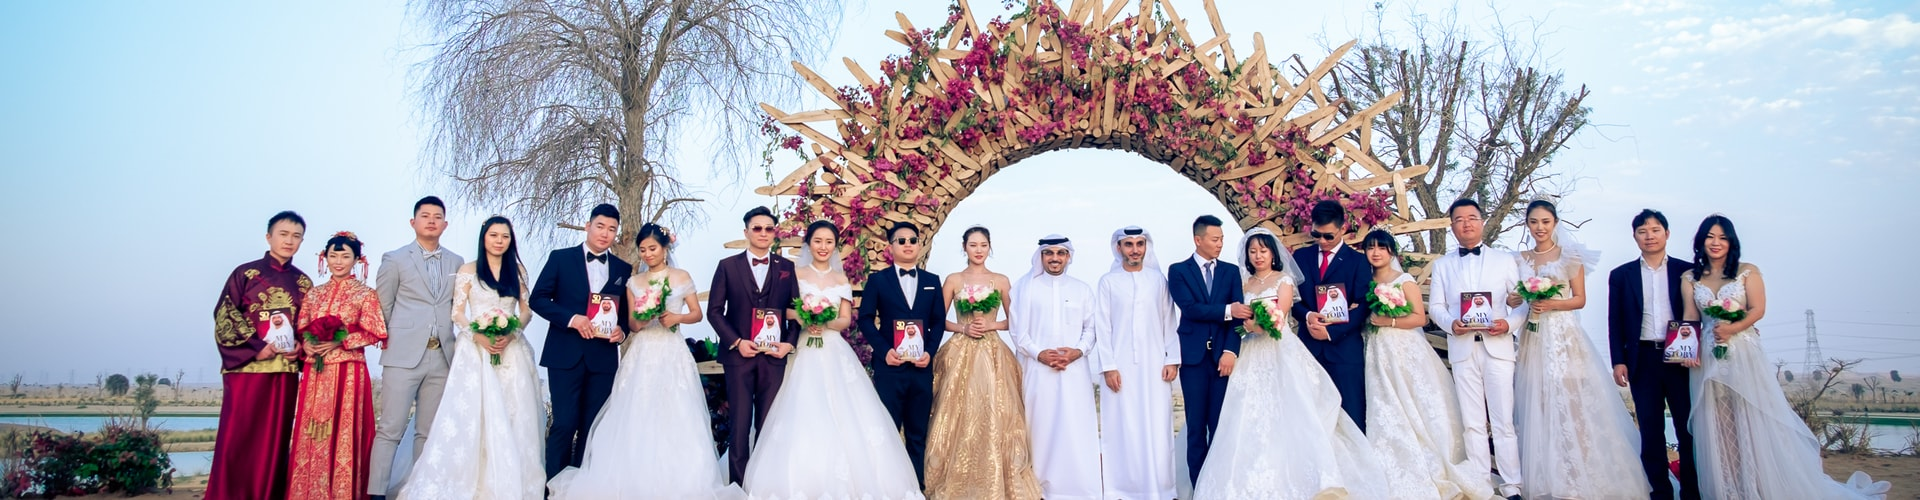 Watch: Dubai's Love Lakes Transform into Stunning Wedding Destination for Chinese Couples